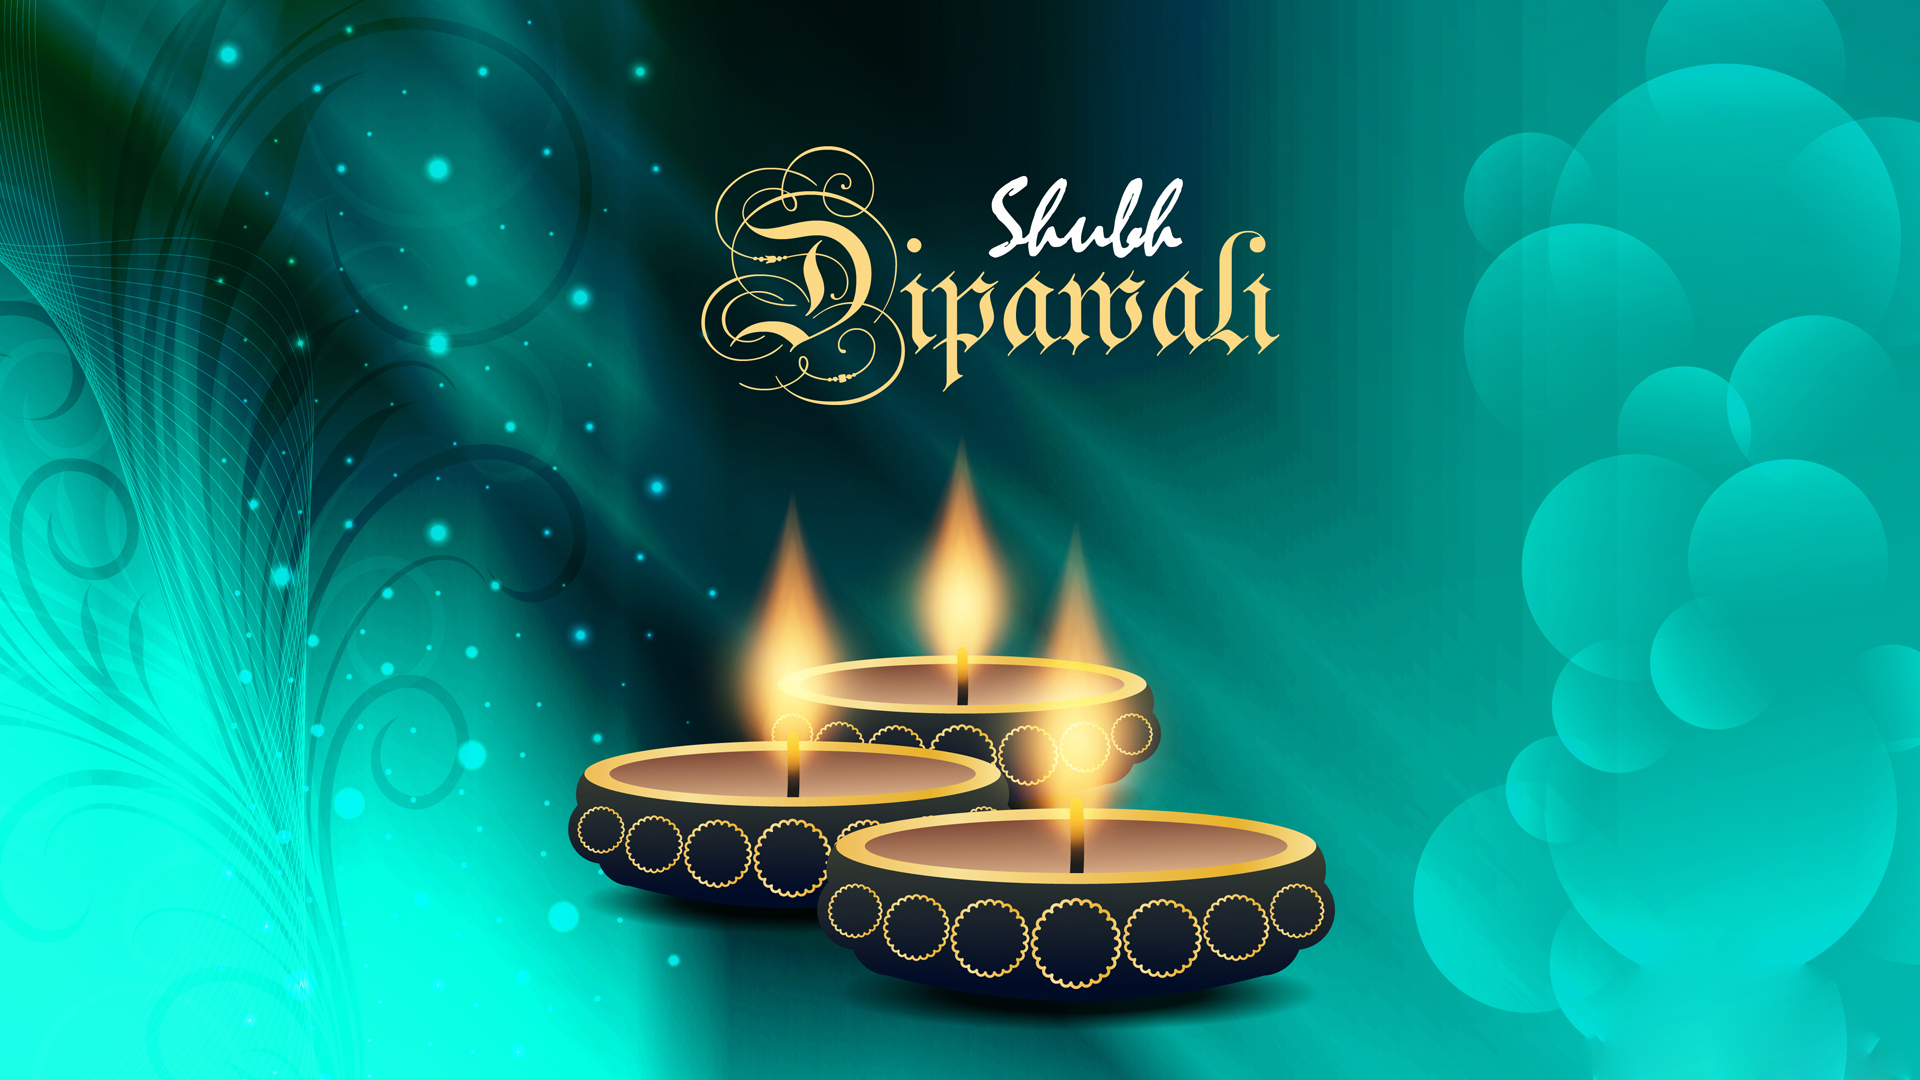 20 Best Happy Diwali 3d Animated Wallpapers Free Download For Desktop